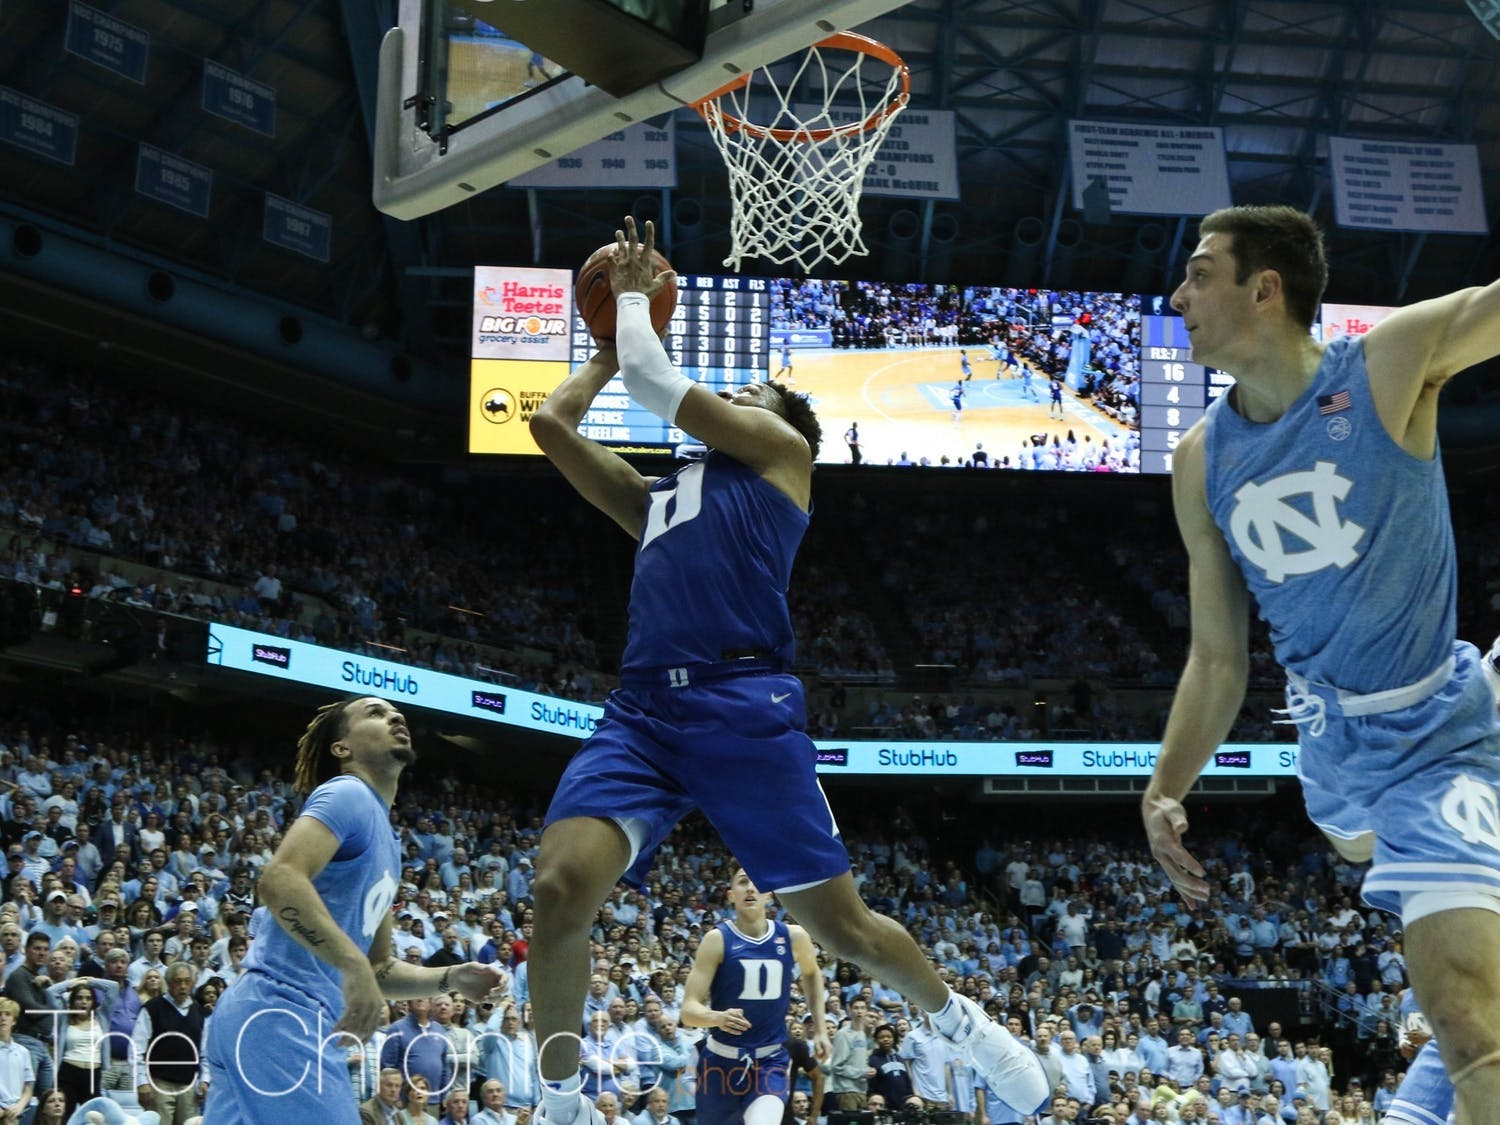 Moore's buzzer-beater to beat North Carolina in February will go down as one of the most iconic shots in Duke history.